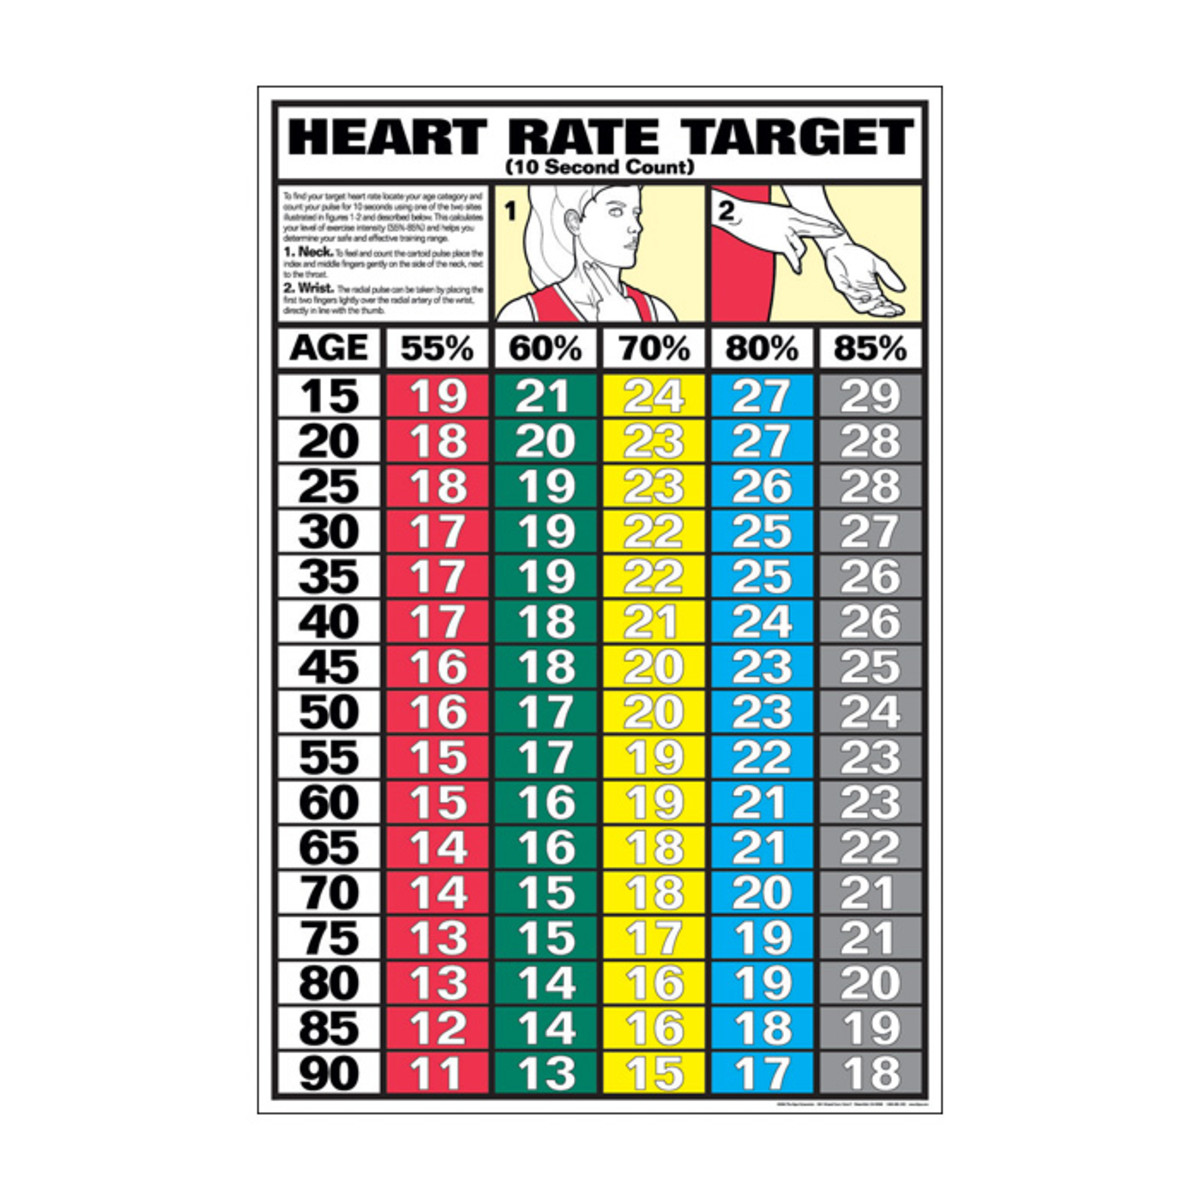 Heart rate target chart heart rate target chart pinit sciox Image collections